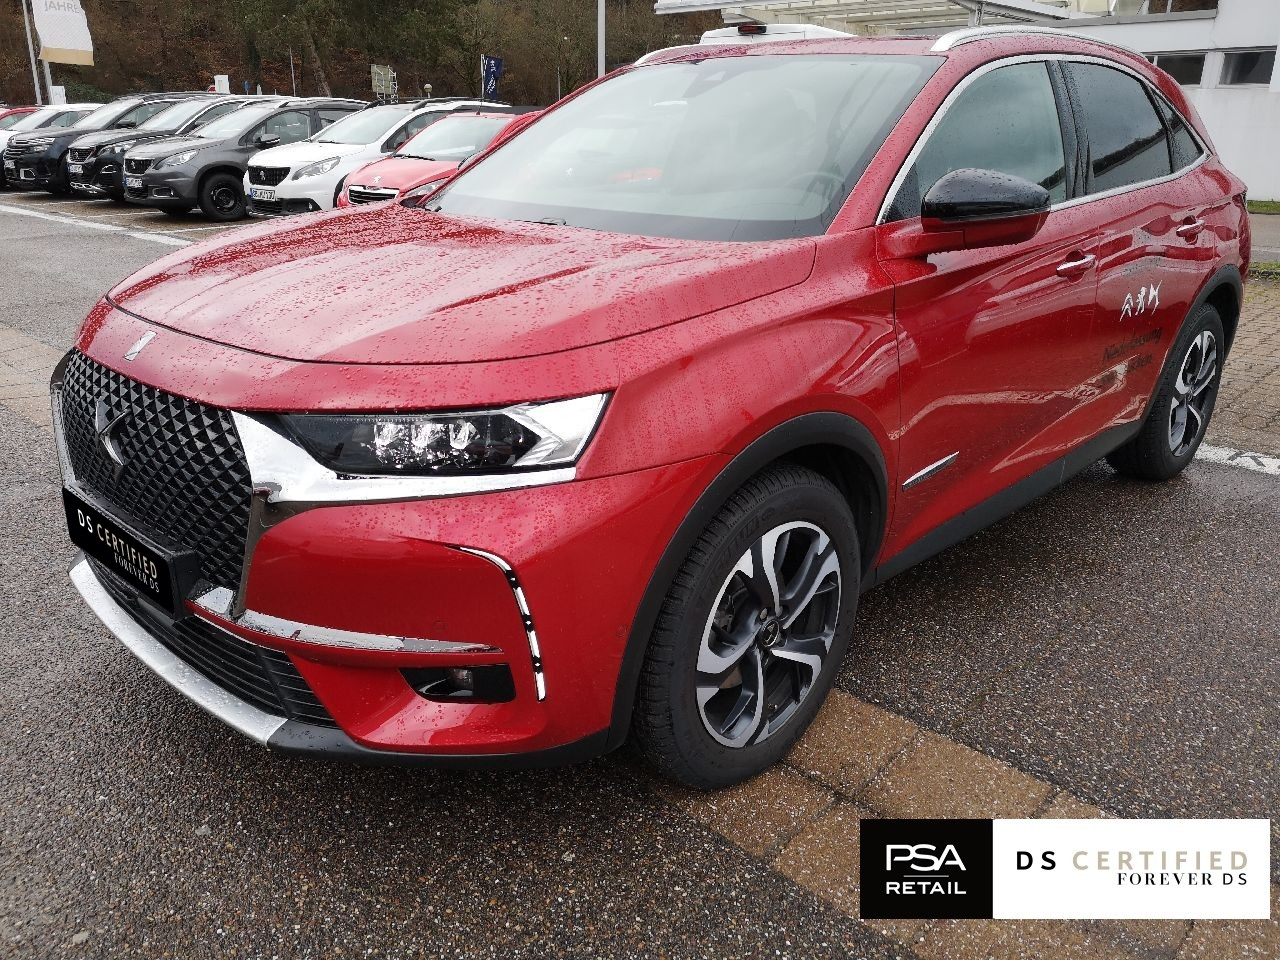 Ds DS 7 CROSSBACK BE CHIC RIVOLI BlueHDI 180PS Automatik